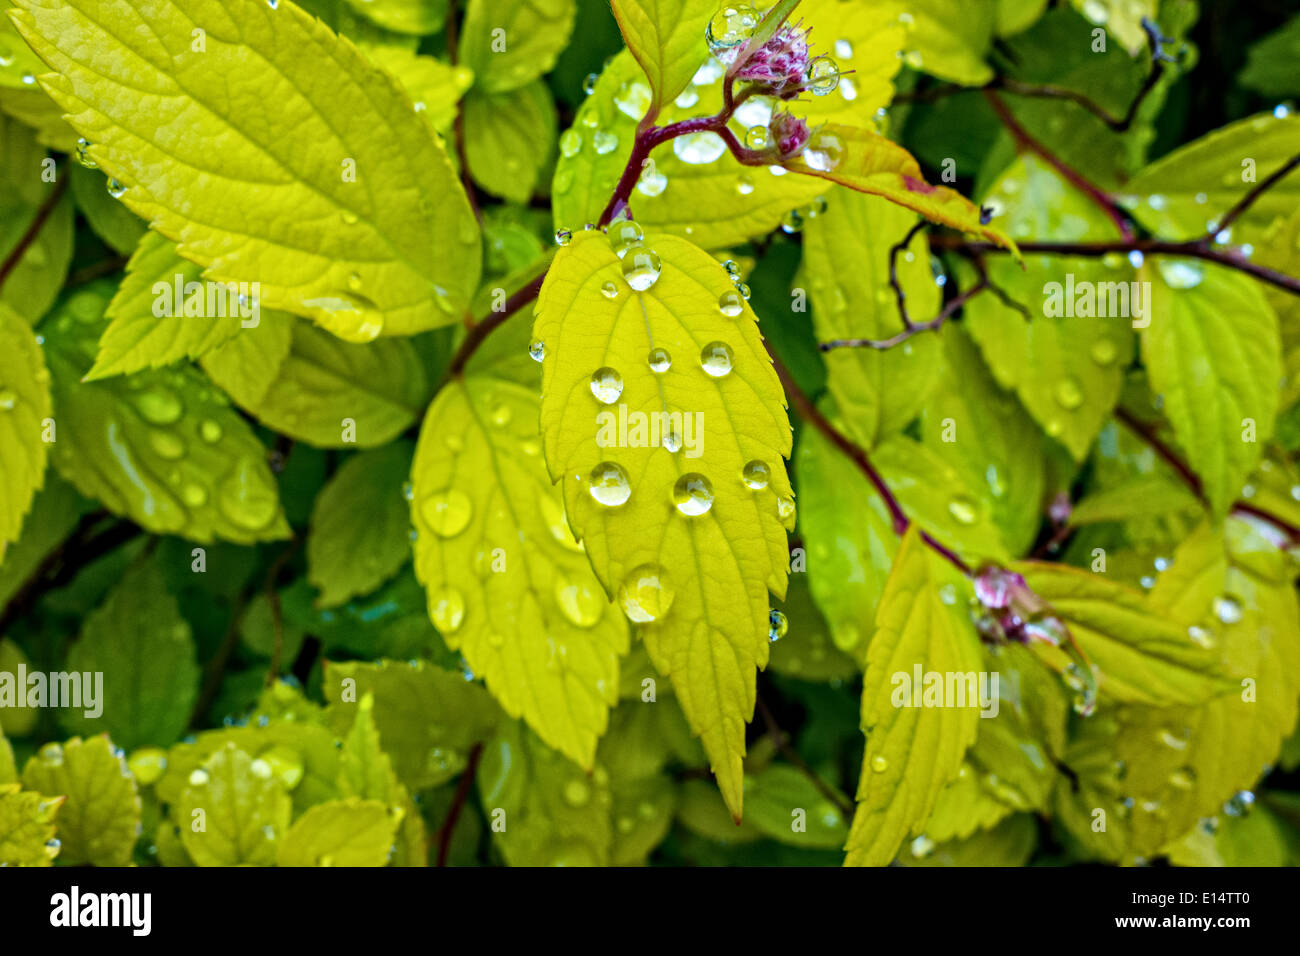 Sparkling beads of water on the leaves of a Spirea shrub after a shower - Stock Image